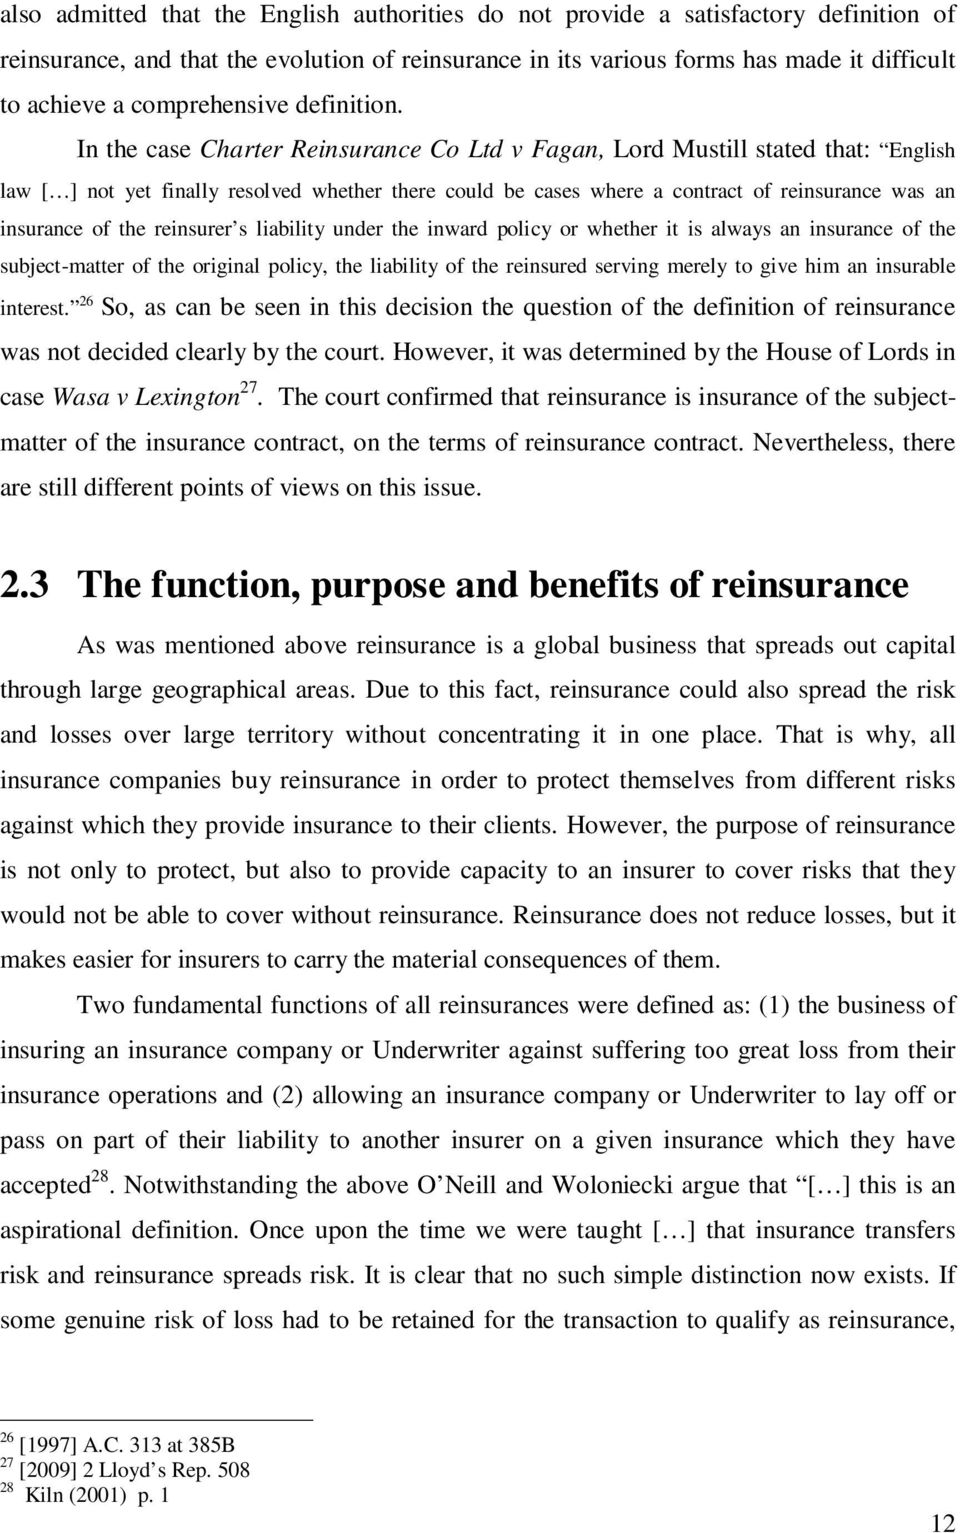 In the case Charter Reinsurance Co Ltd v Fagan, Lord Mustill stated that: English law [ ] not yet finally resolved whether there could be cases where a contract of reinsurance was an insurance of the